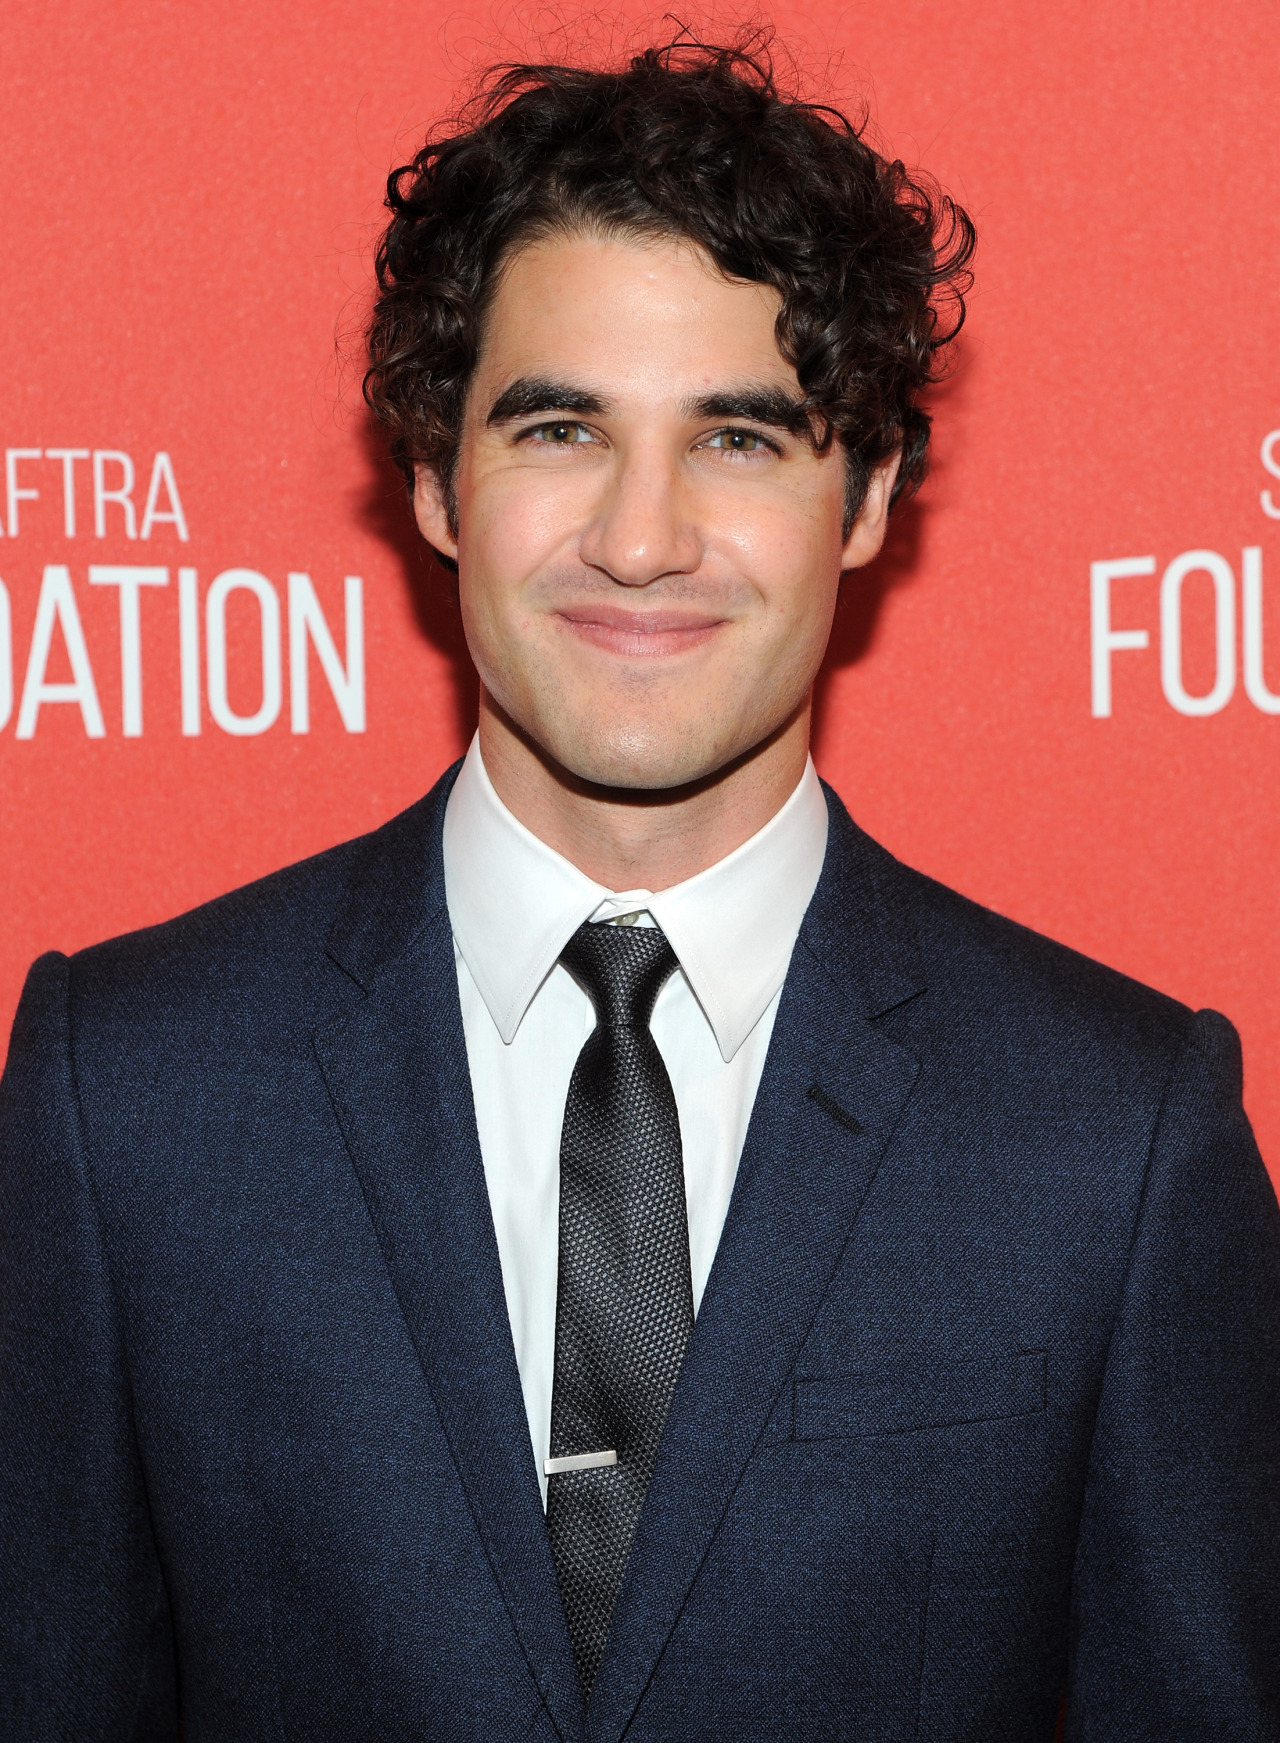 Gleek - Darren's Chartitable Work for 2015 Tumblr_nxdmvwkBvs1r4gxc3o2_1280